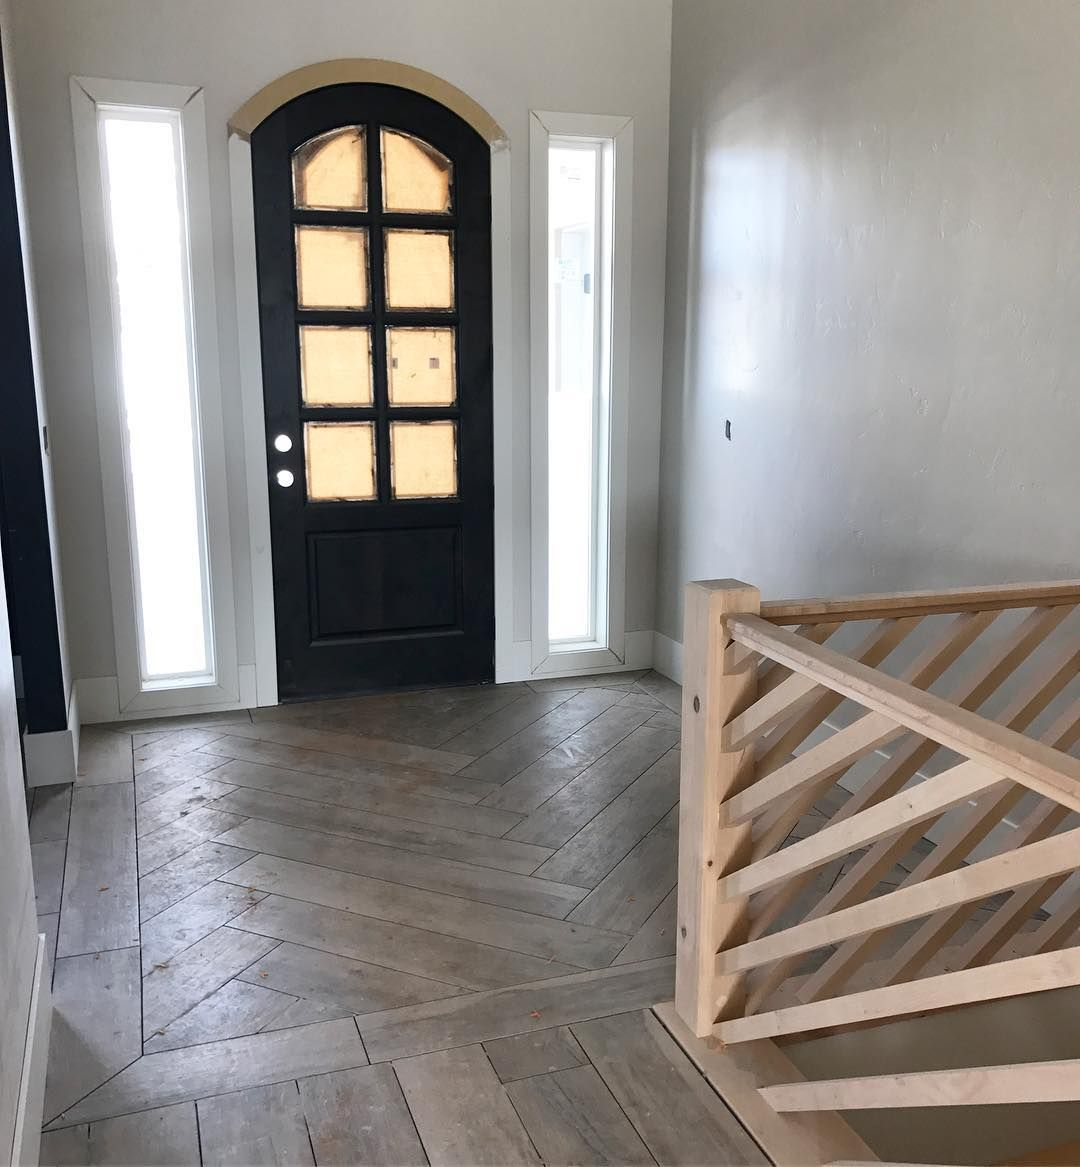 123 Likes 25 Comments Interior Designer Yvonnechristensendesign On Instagram Loving My Latest Entr Foyer Flooring House Flooring Herringbone Wood Floor